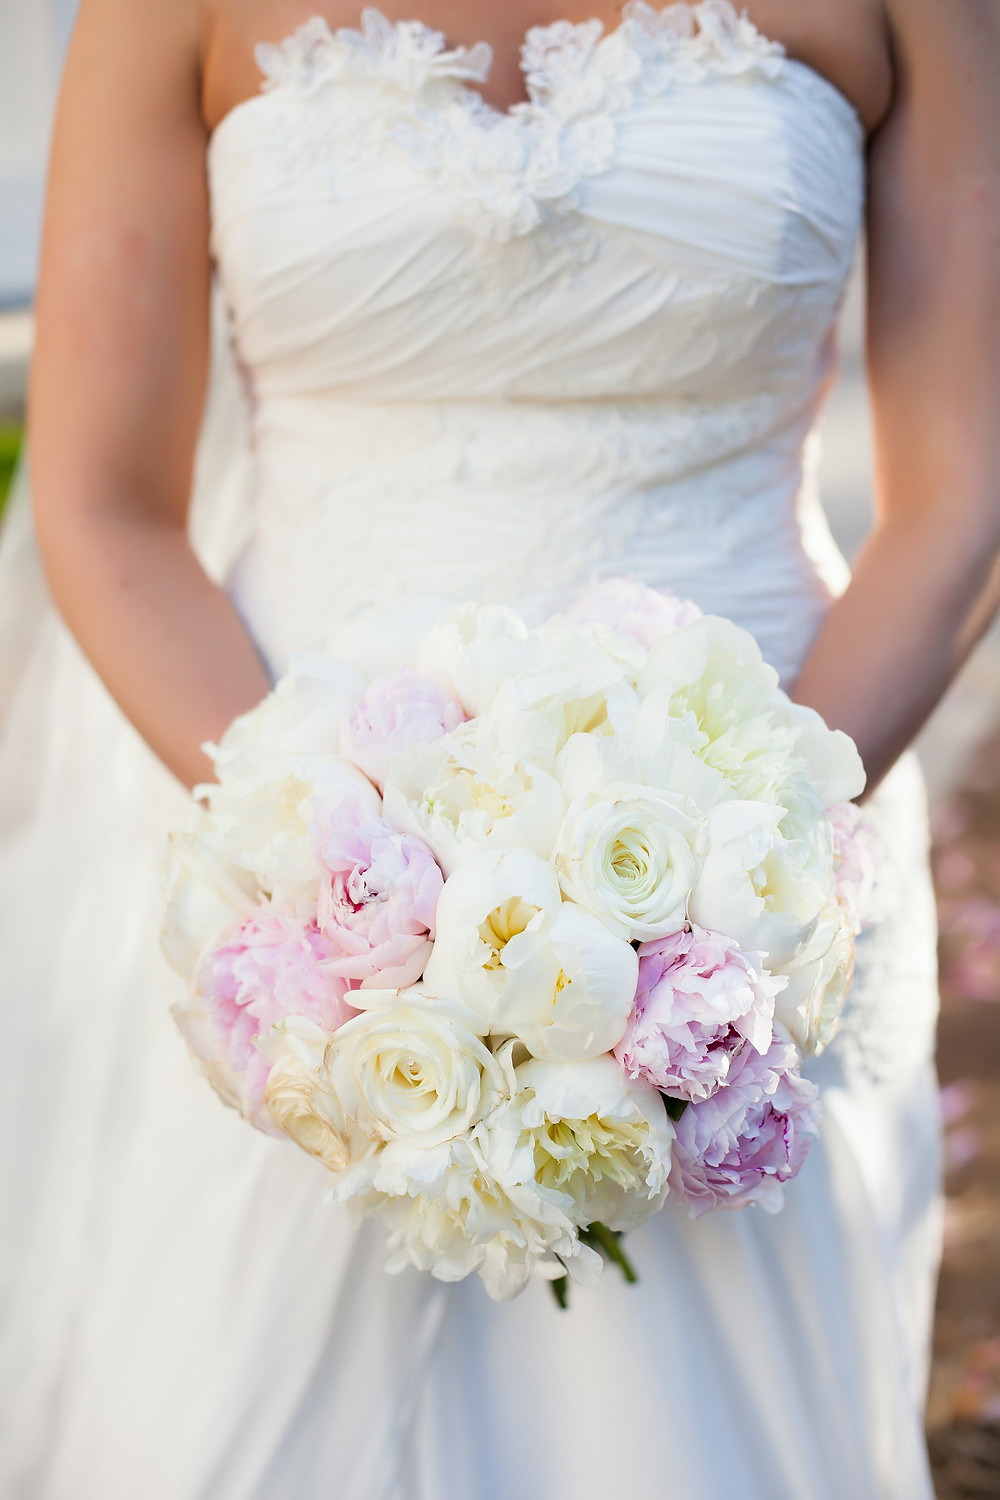 Classic style wedding bouquet at Wadsworth Mansion